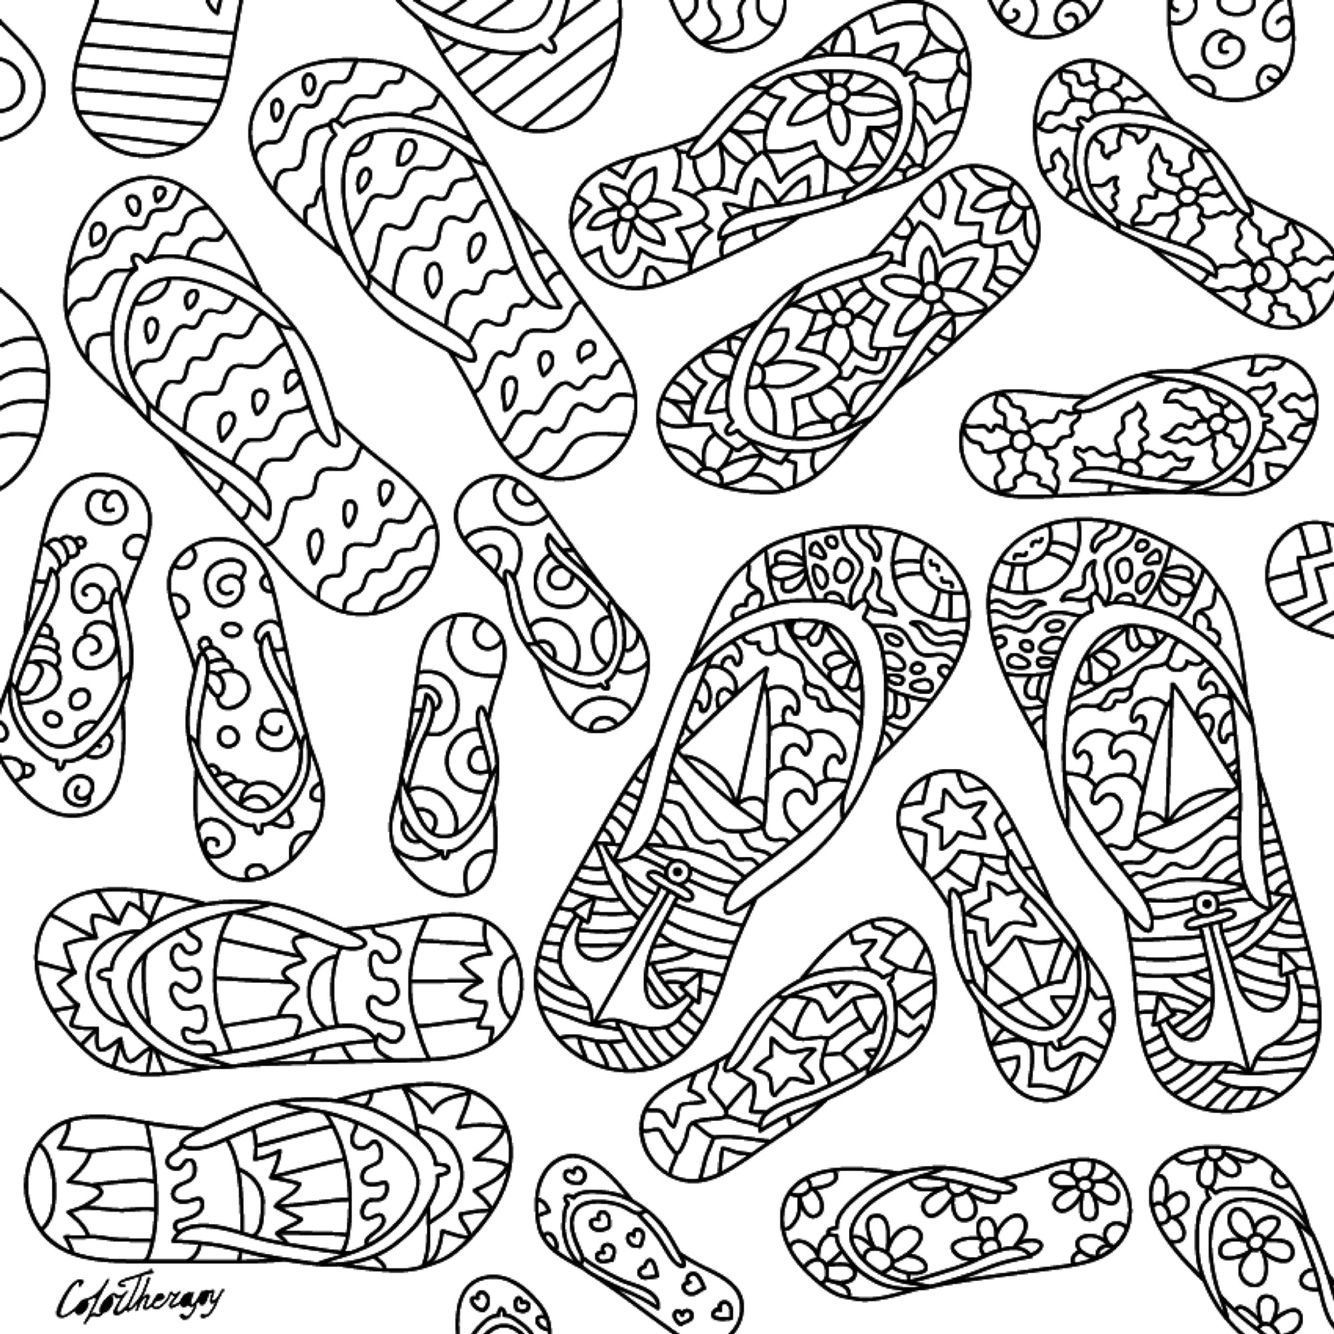 pin by jessie novoa on fashion coloring pages pinterest fashion